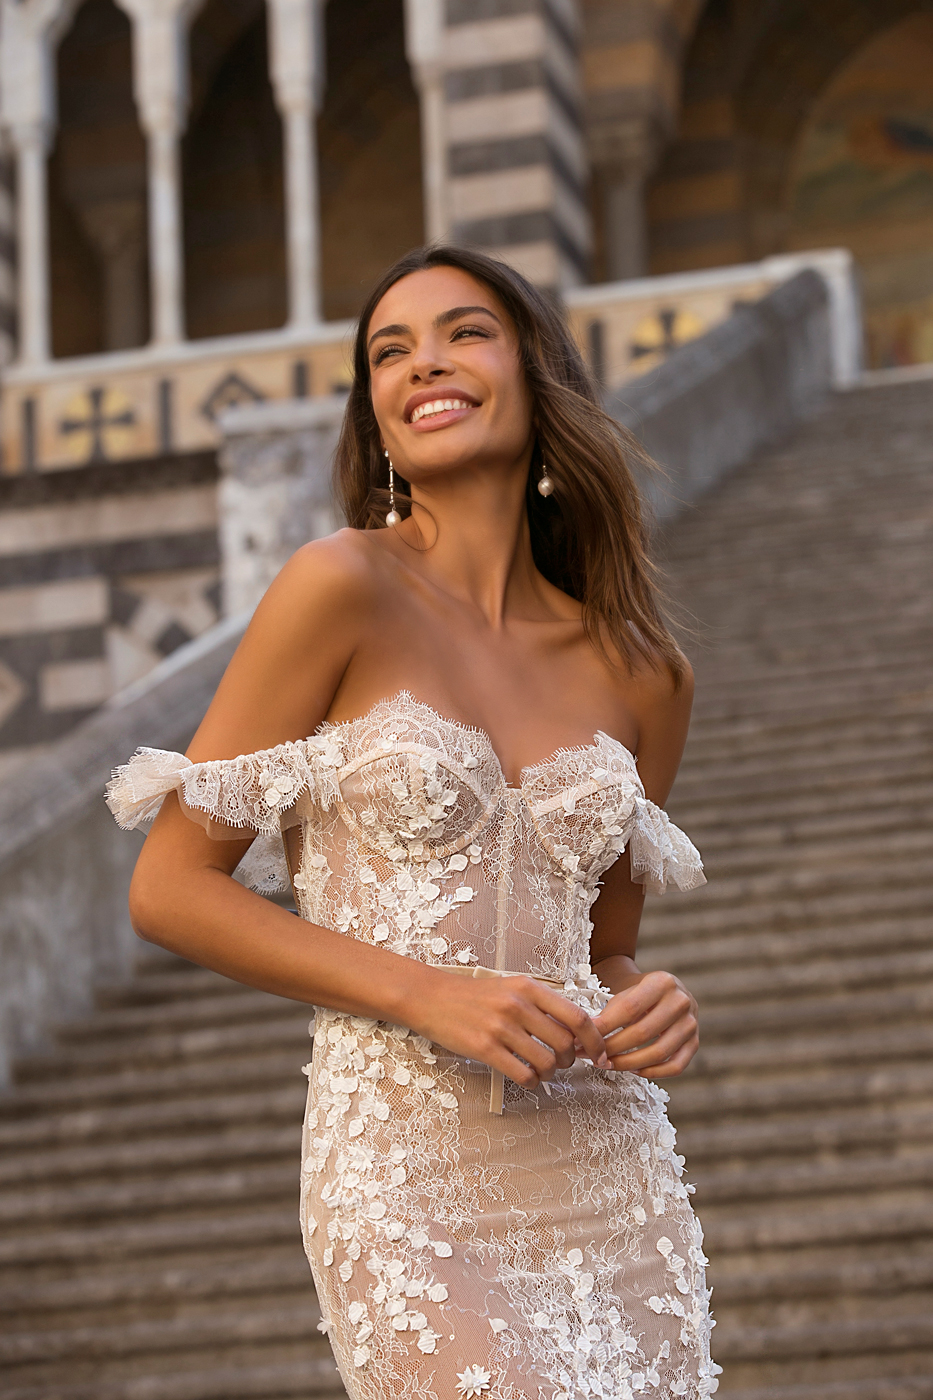 Bridal Gown by Berta Bridal Gown